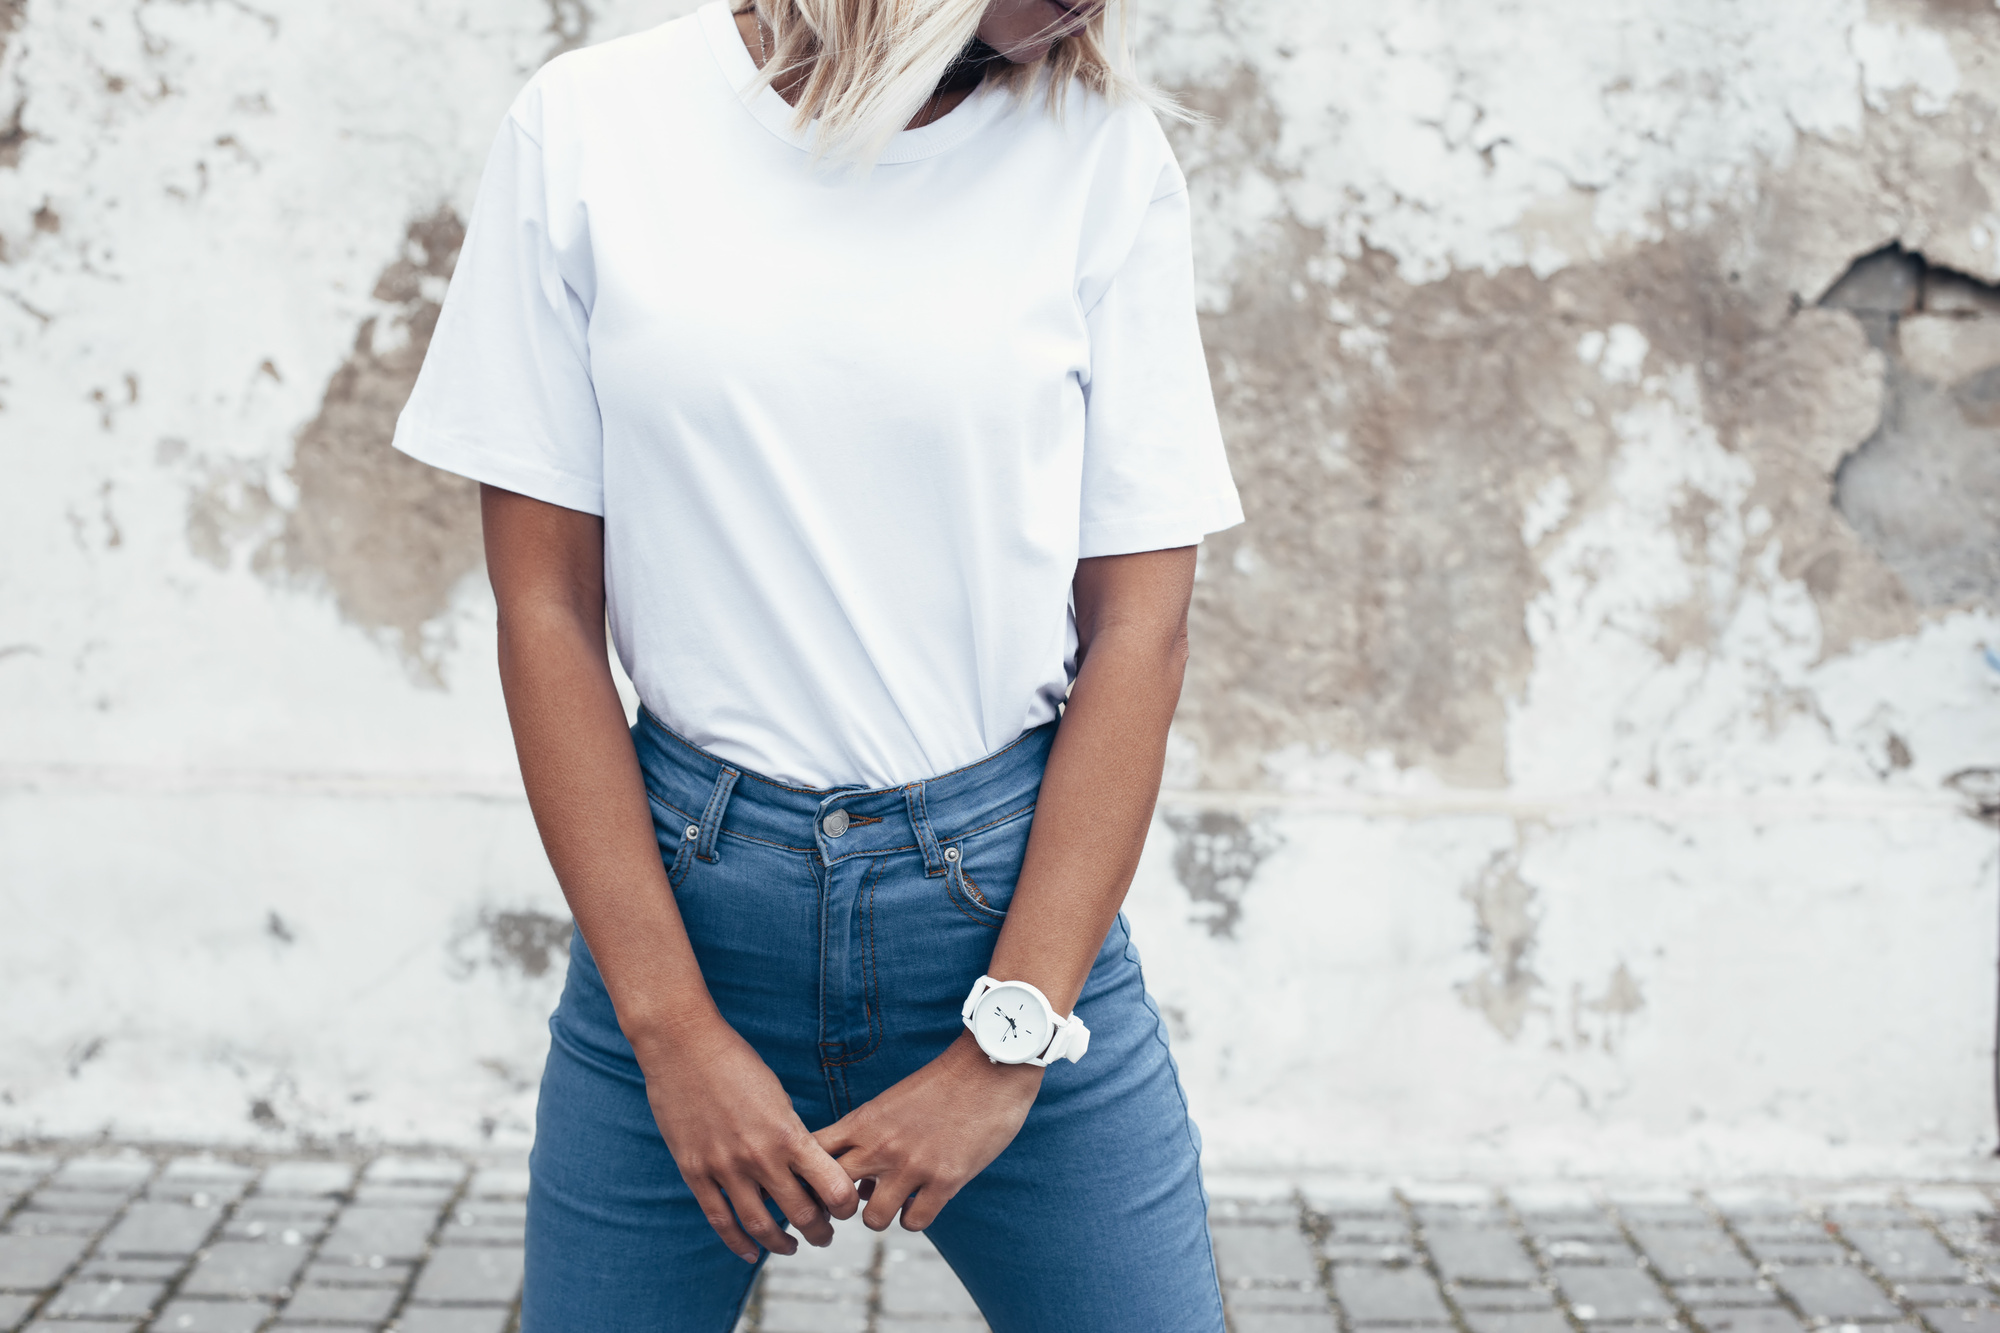 Style Star: How to Spice up Your Everyday T-Shirts